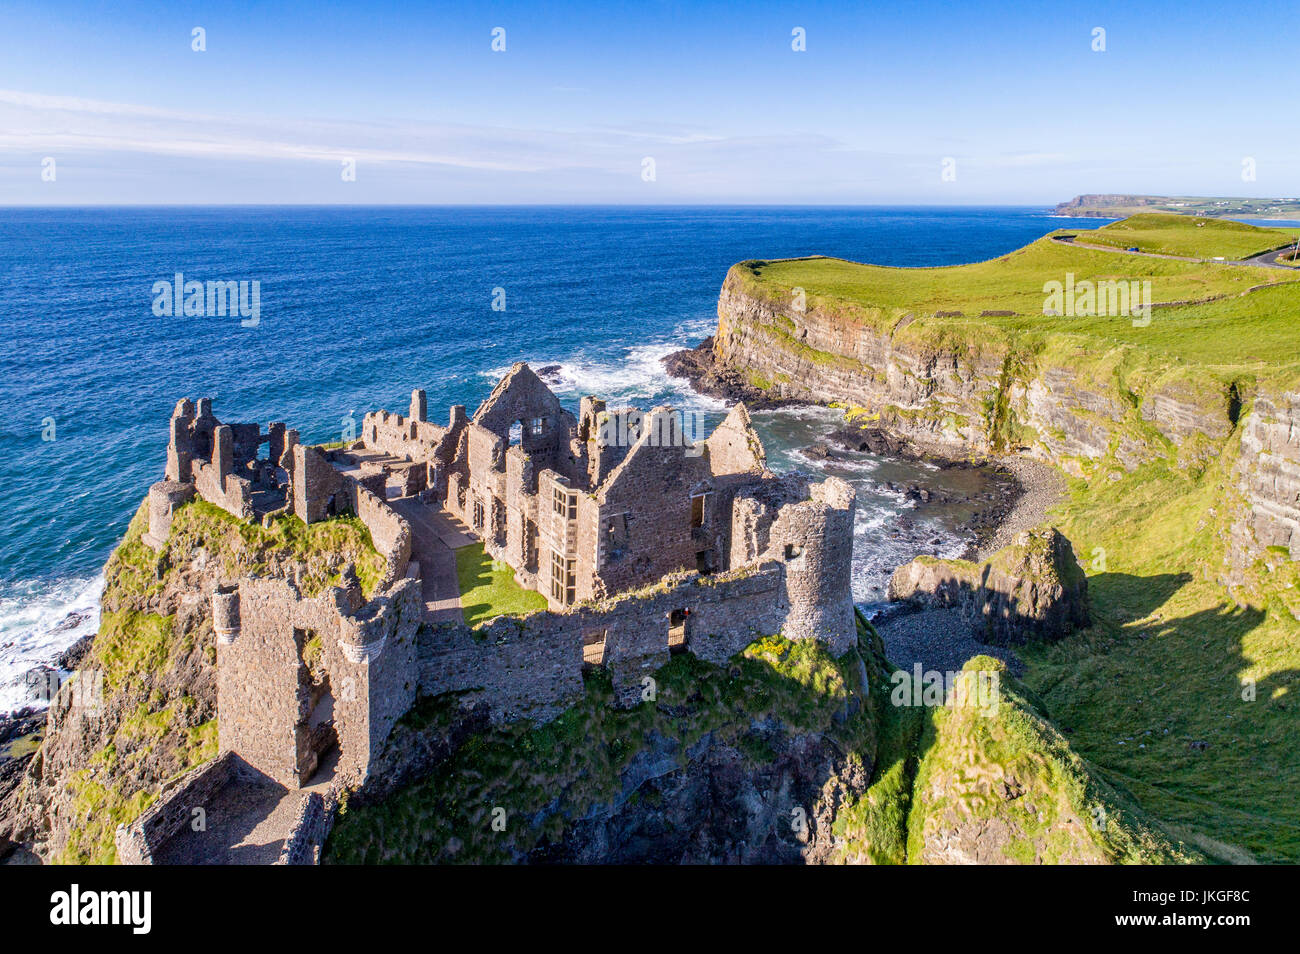 Ruins of medieval Dunluce Castle, cliffs, bays and peninsulas. Northern coast of County Antrim, Northern Ireland, - Stock Image